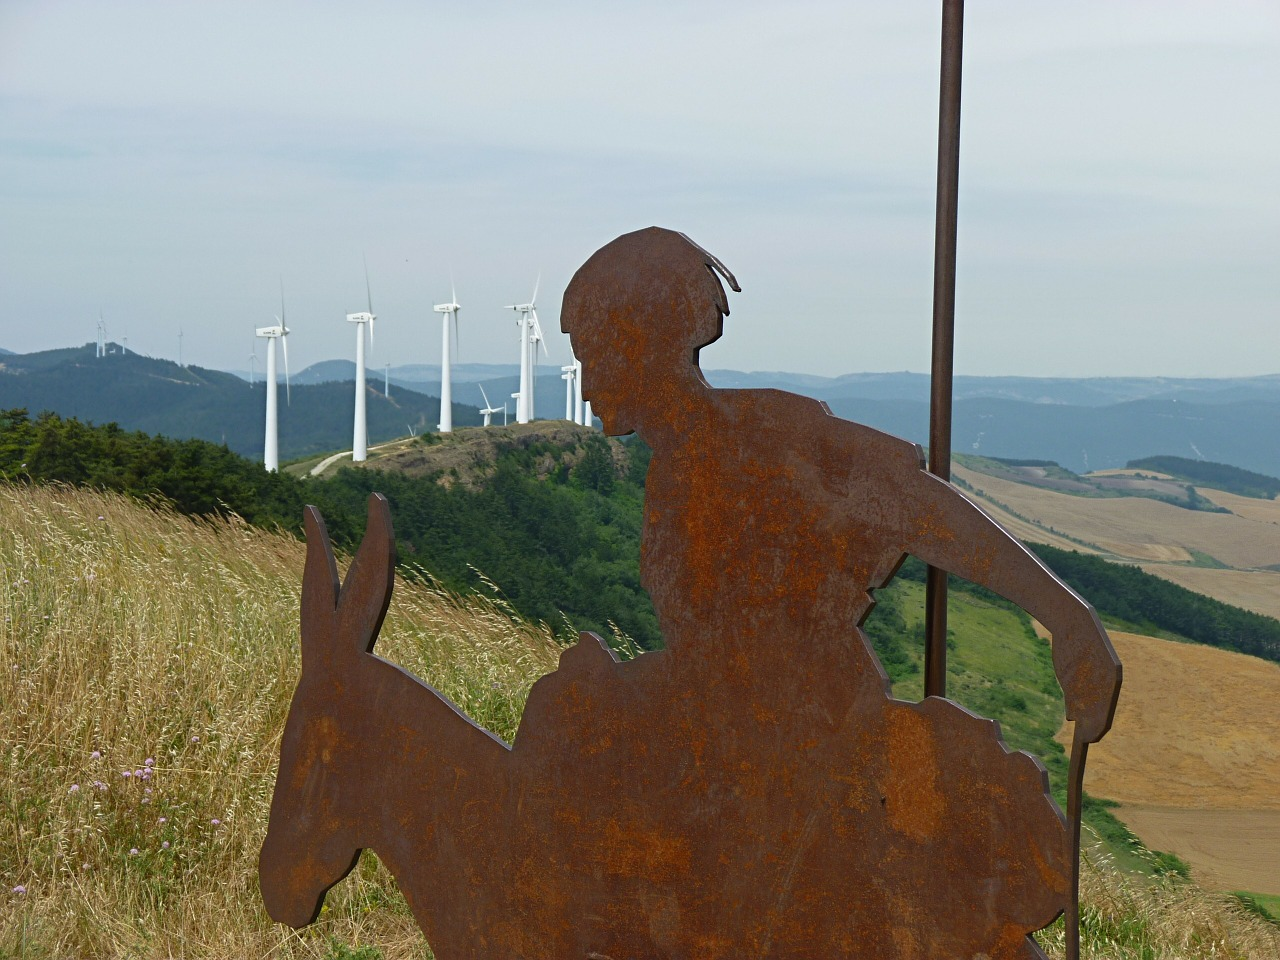 don quixote,windmills,wind power,don quijote,wind,jakobsweg,spain,free pictures, free photos, free images, royalty free, free illustrations, public domain